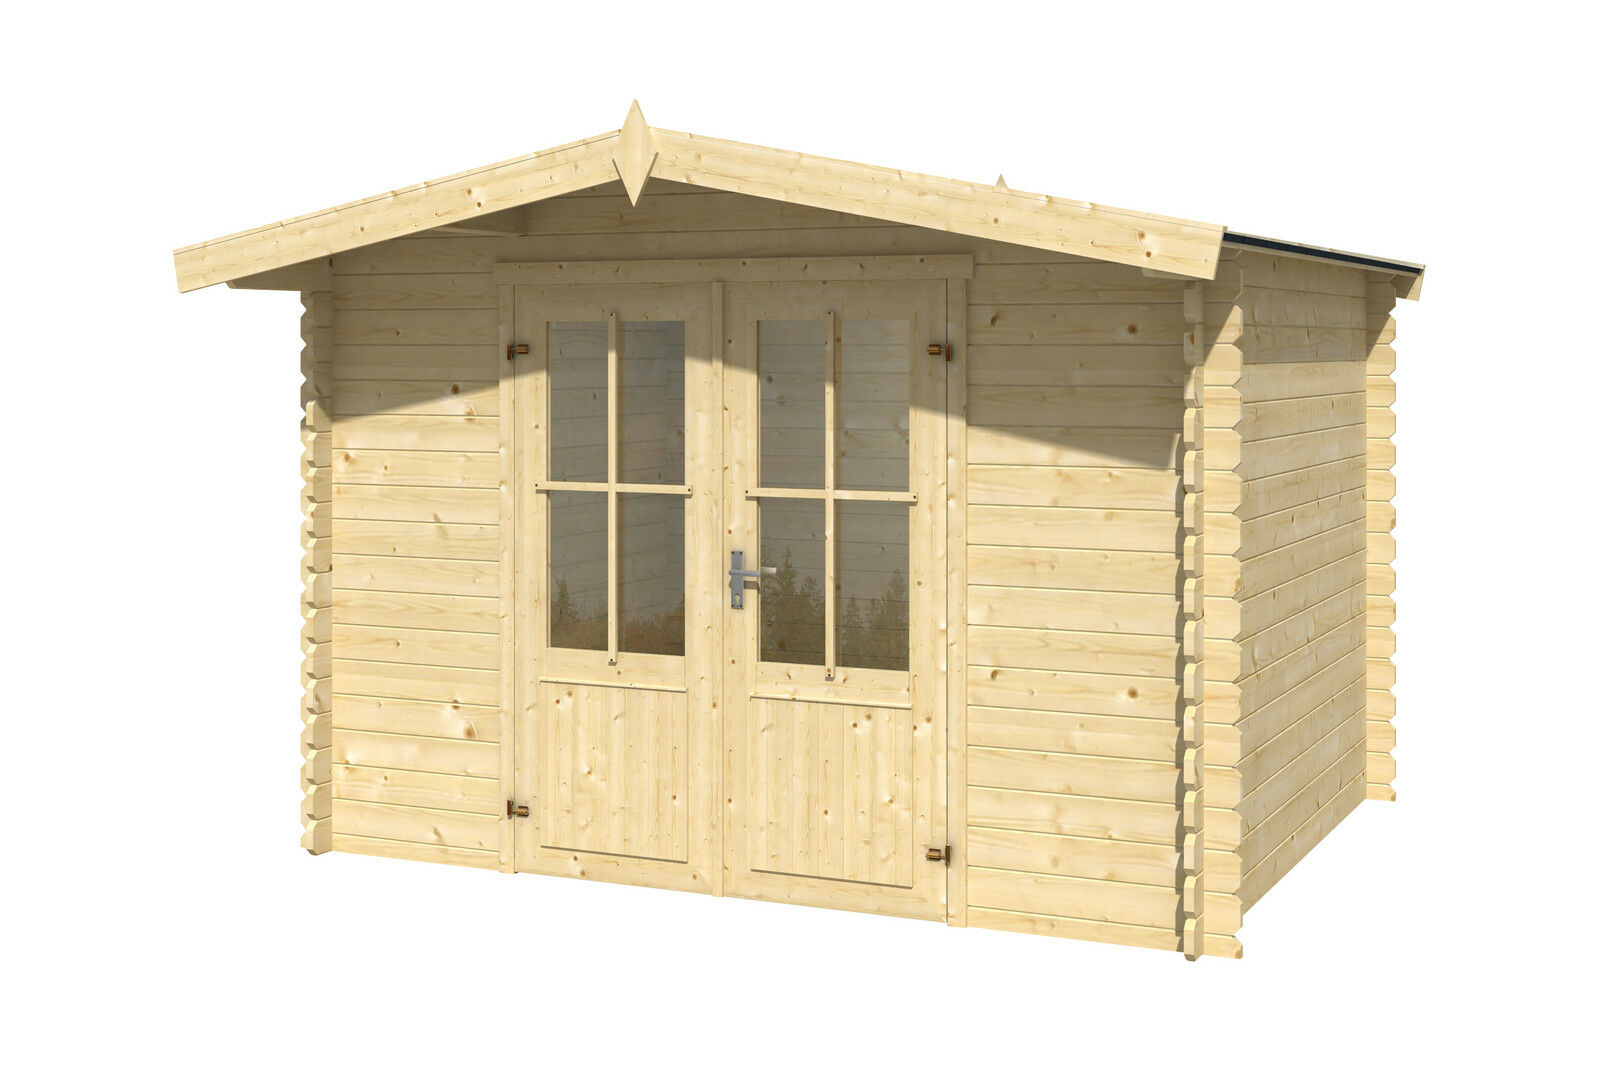 gartenhaus ca 300x250 cm ger tehaus blockhaus schuppen qualit t holz 28 mm eur 849 00. Black Bedroom Furniture Sets. Home Design Ideas